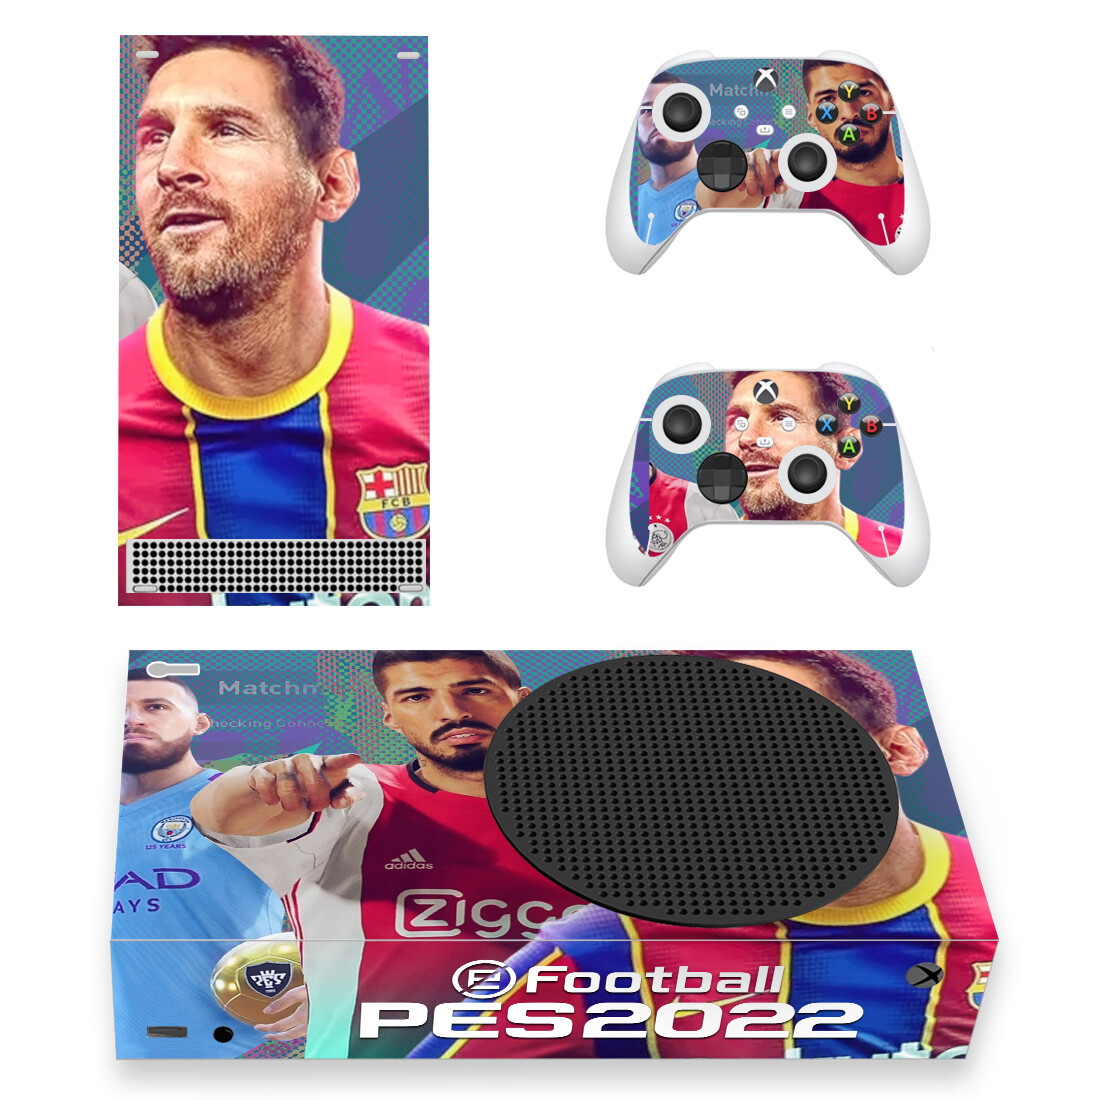 eFootball PES 2022 Skin Sticker Decal For Xbox Series S